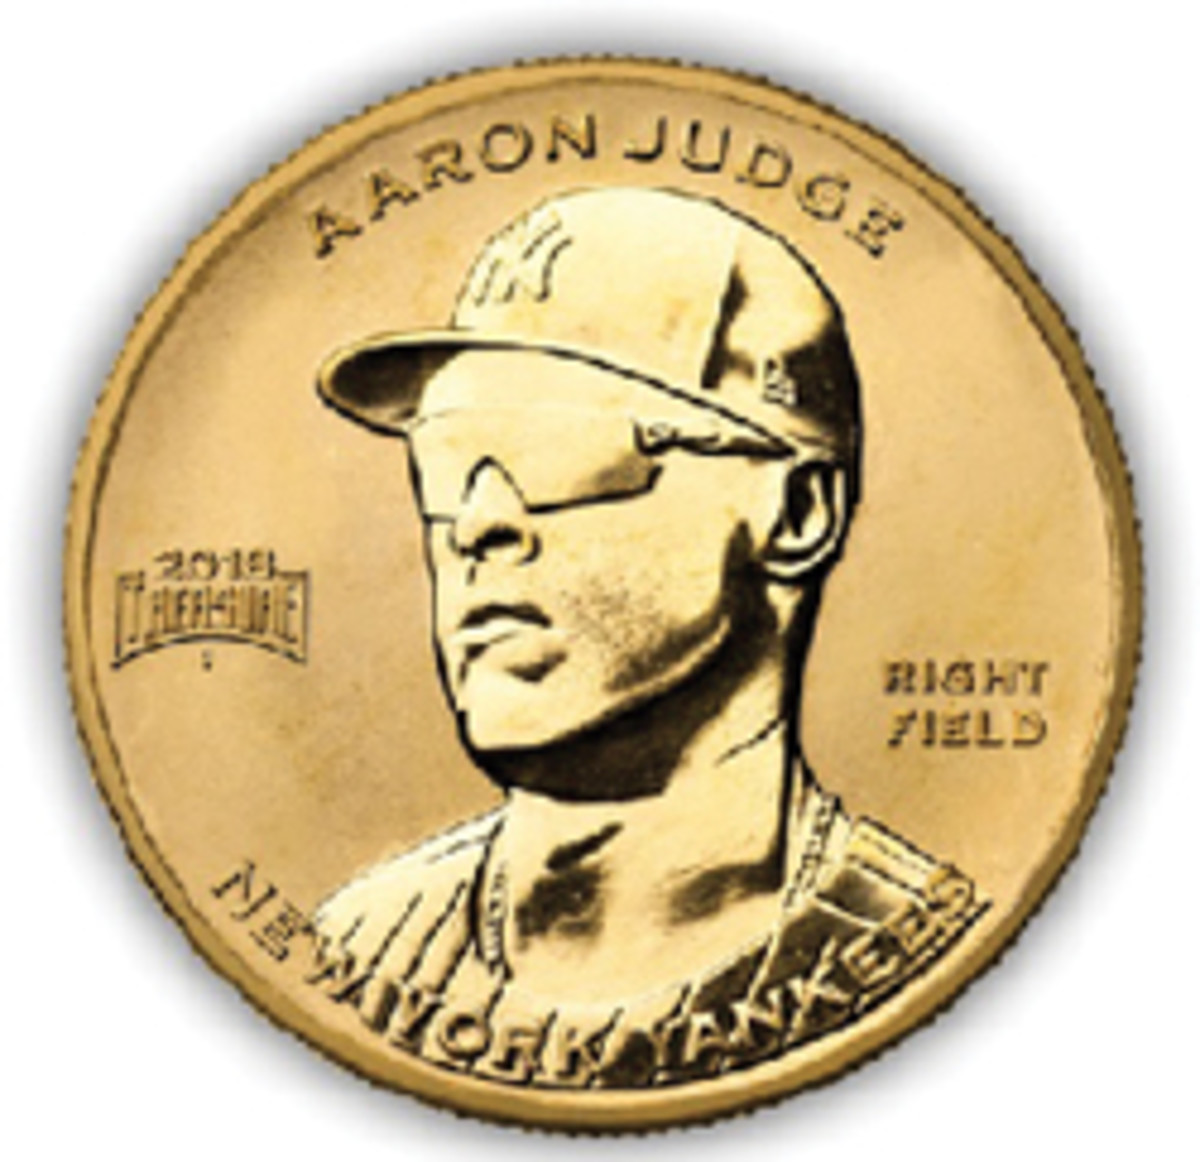 A rendition of the Baseball Treasure gold coin.